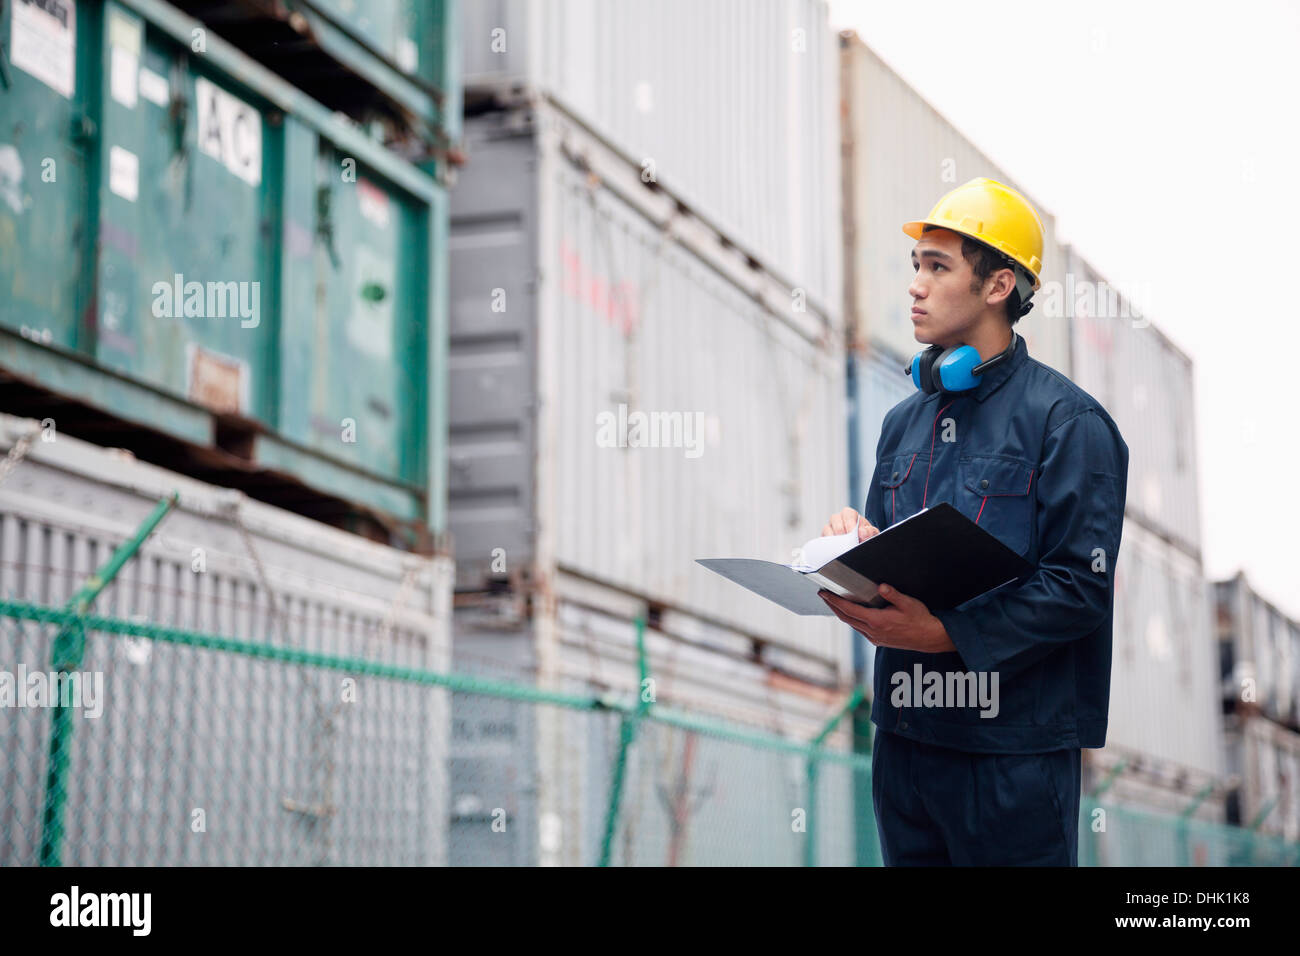 Young worker in protective work wear examining cargo in a shipping yard - Stock Image